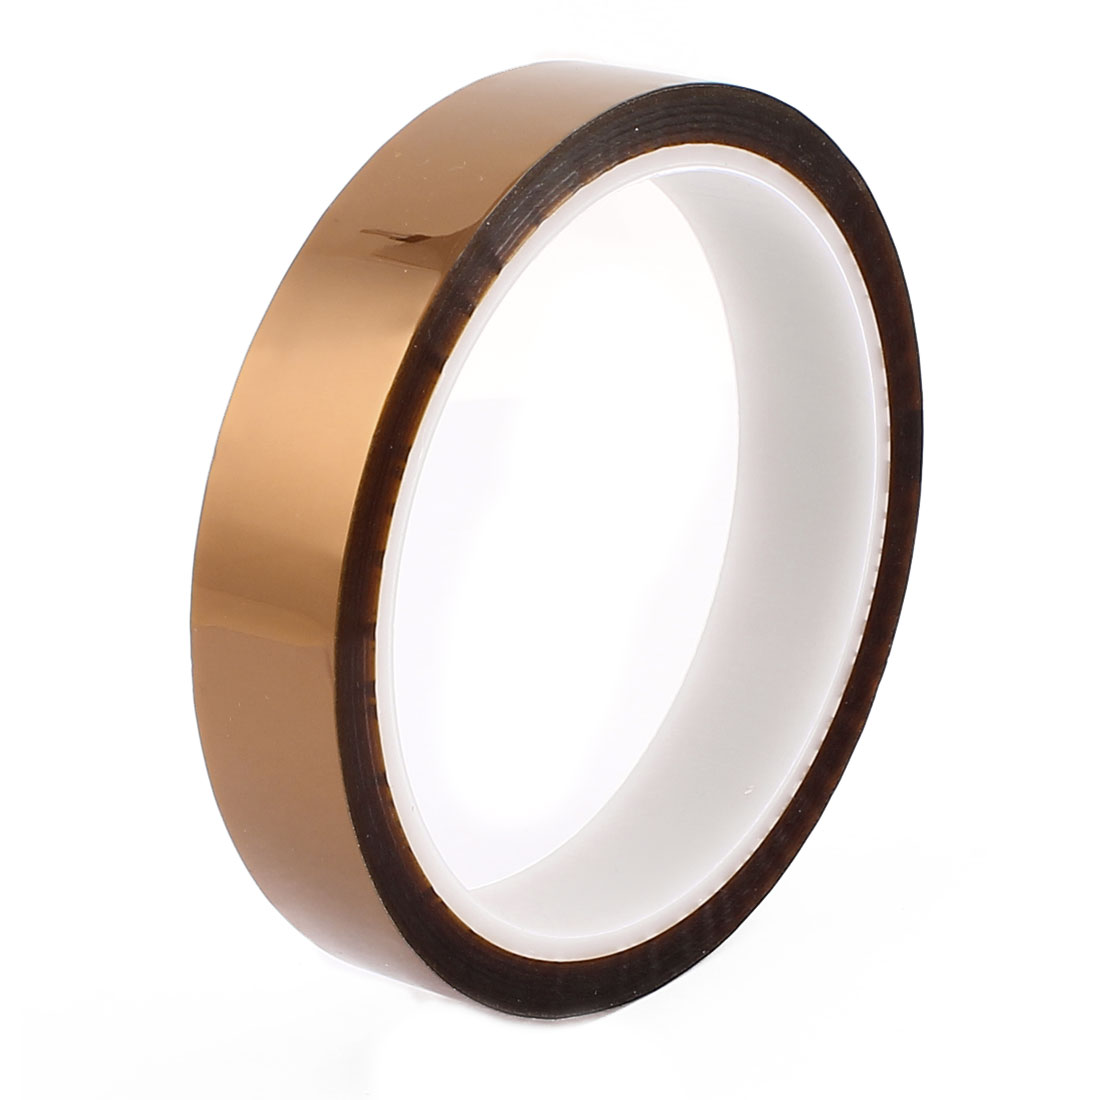 1.8cm x 33m High-Temperature Heat Resistance Polymide DIY Tape